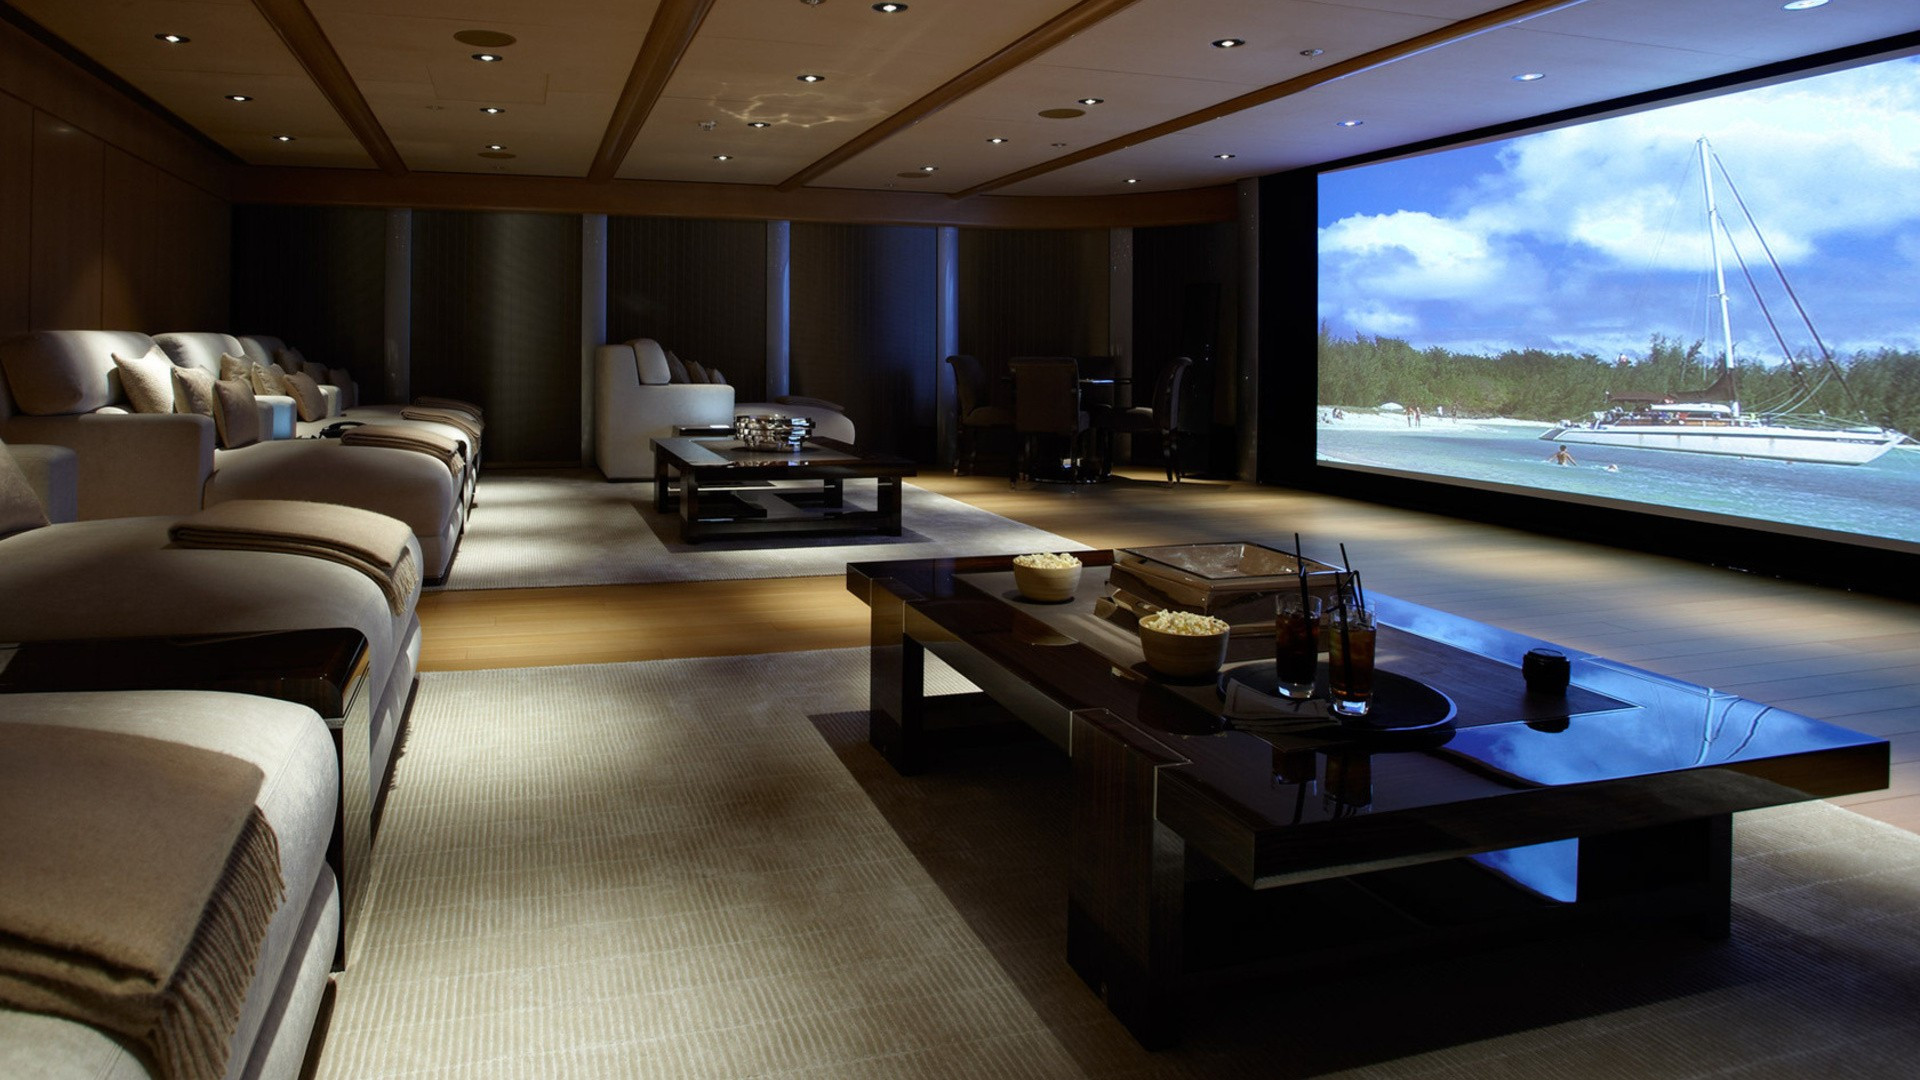 5 Home Theater Design Mistakes